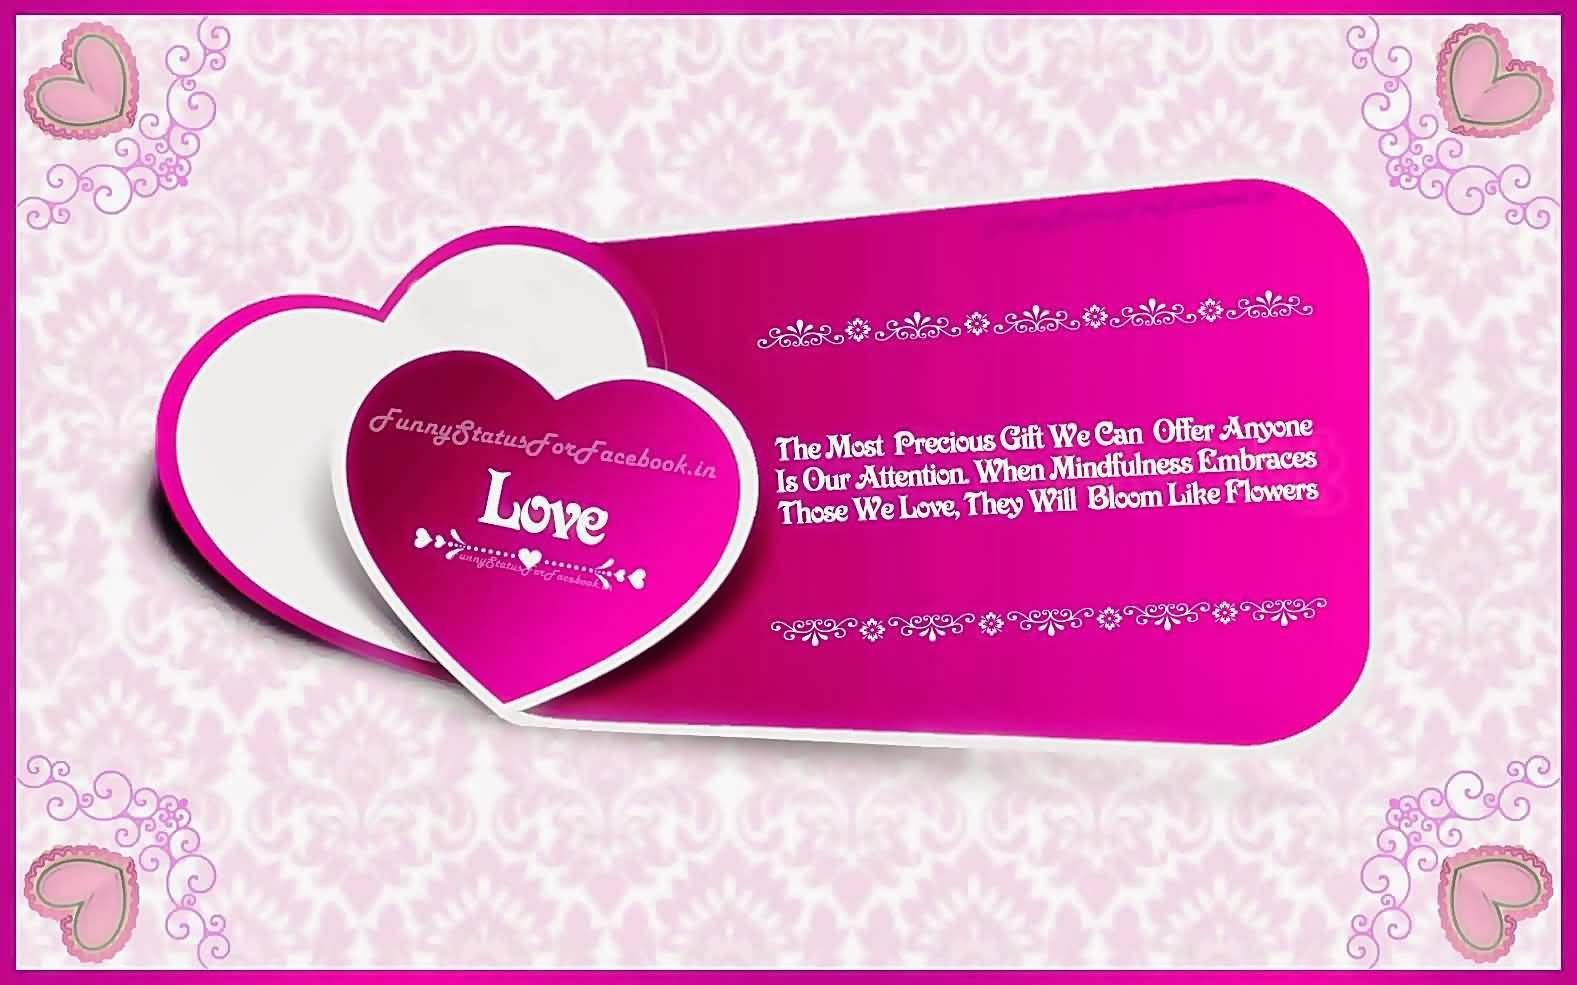 Love Quotes On Valentines Day For Her Love Quotes For Her On Valentines Day 12  Quotesbae